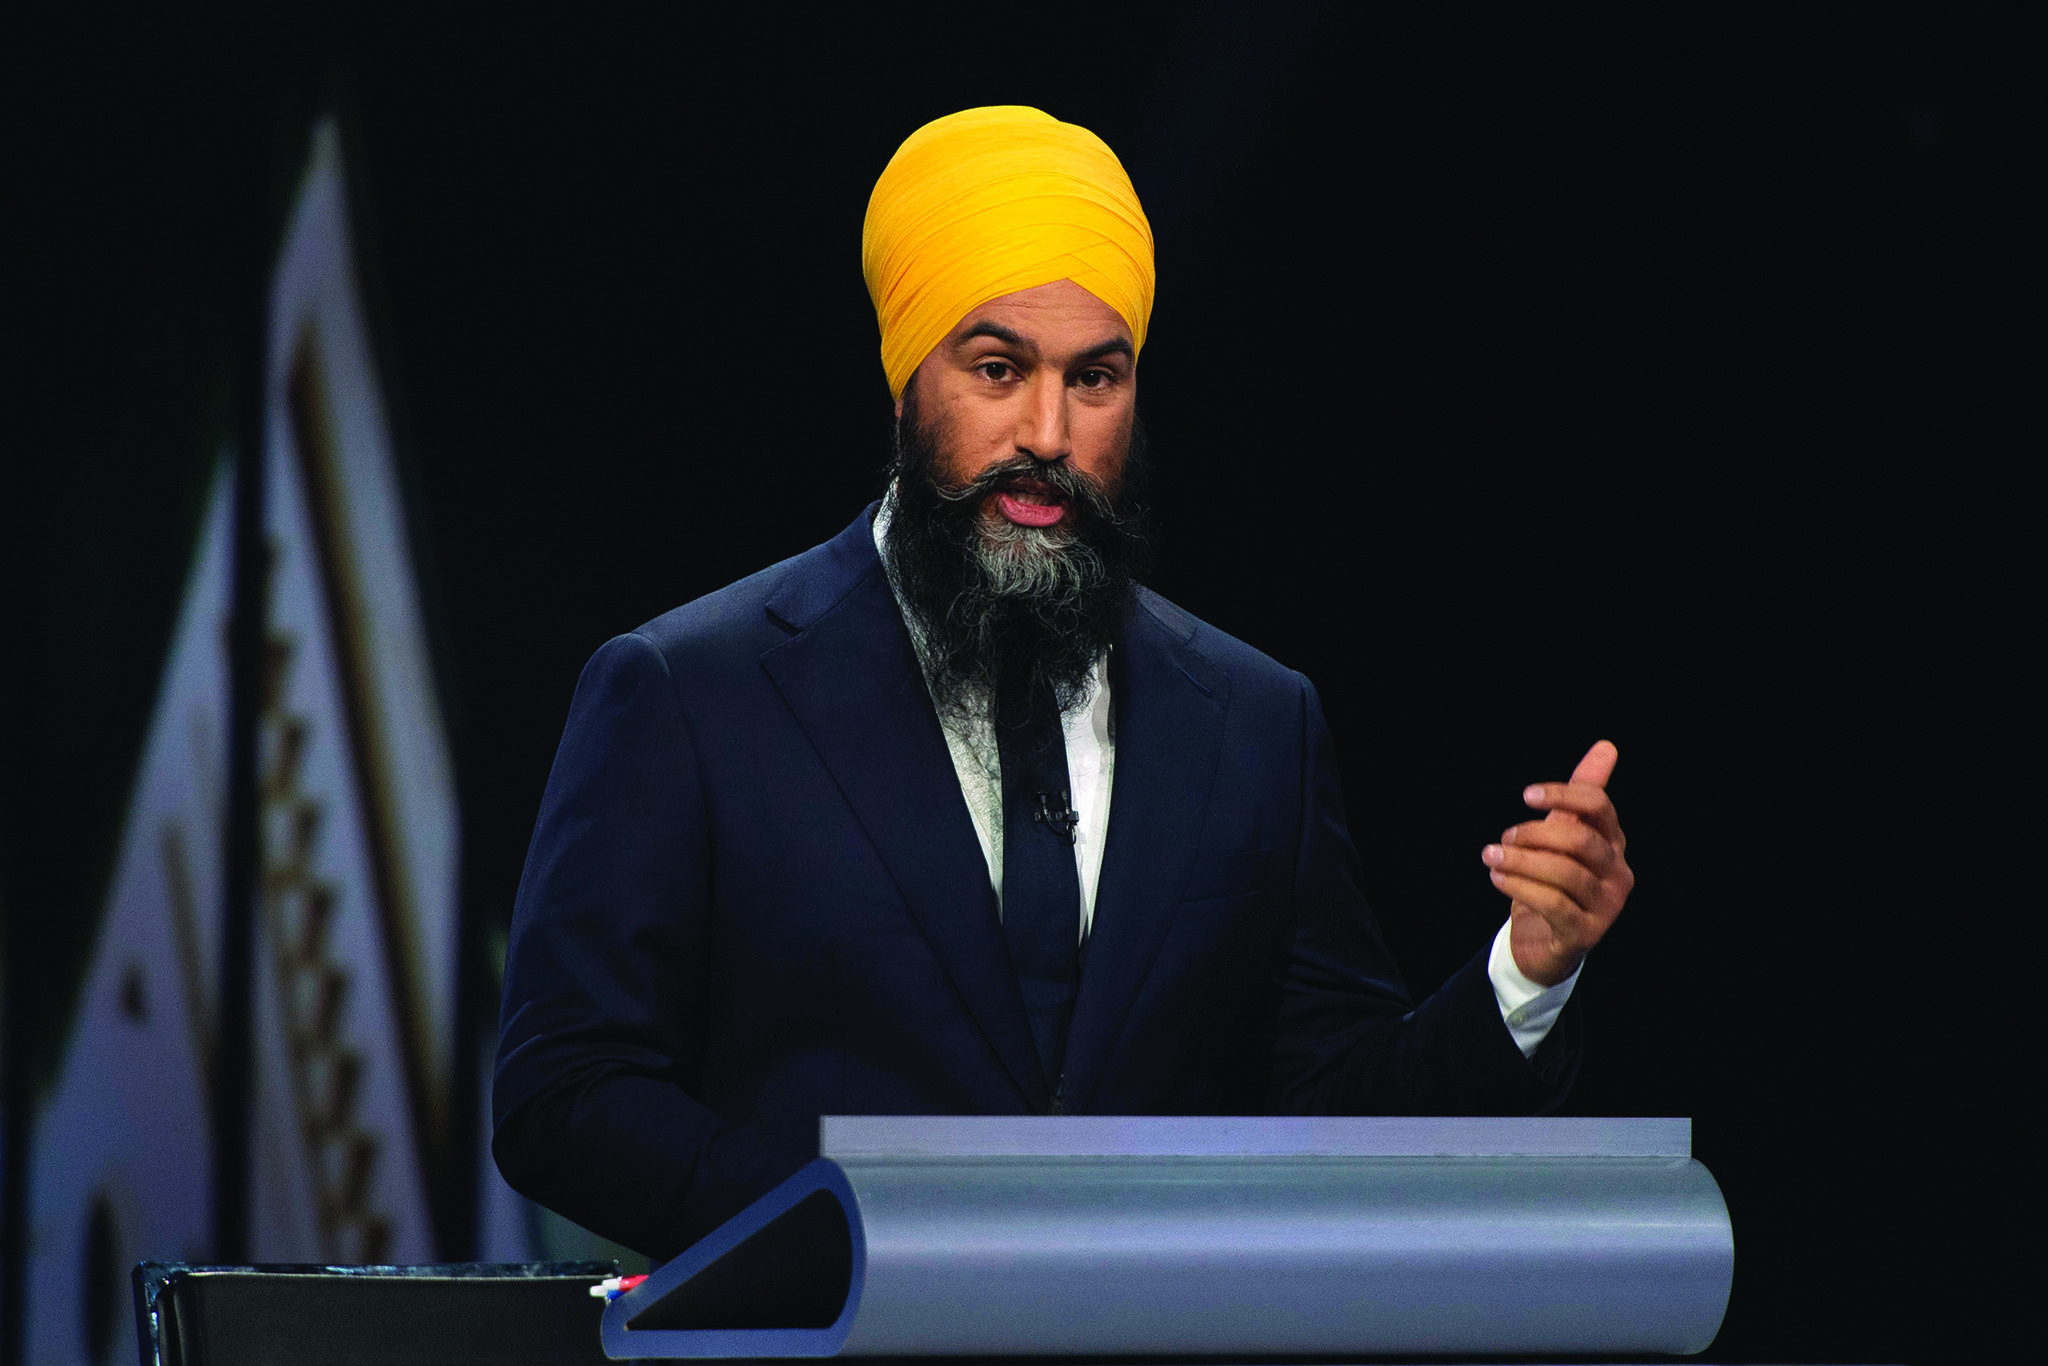 Singh's stance on Bill 21 called out by anti-hate group